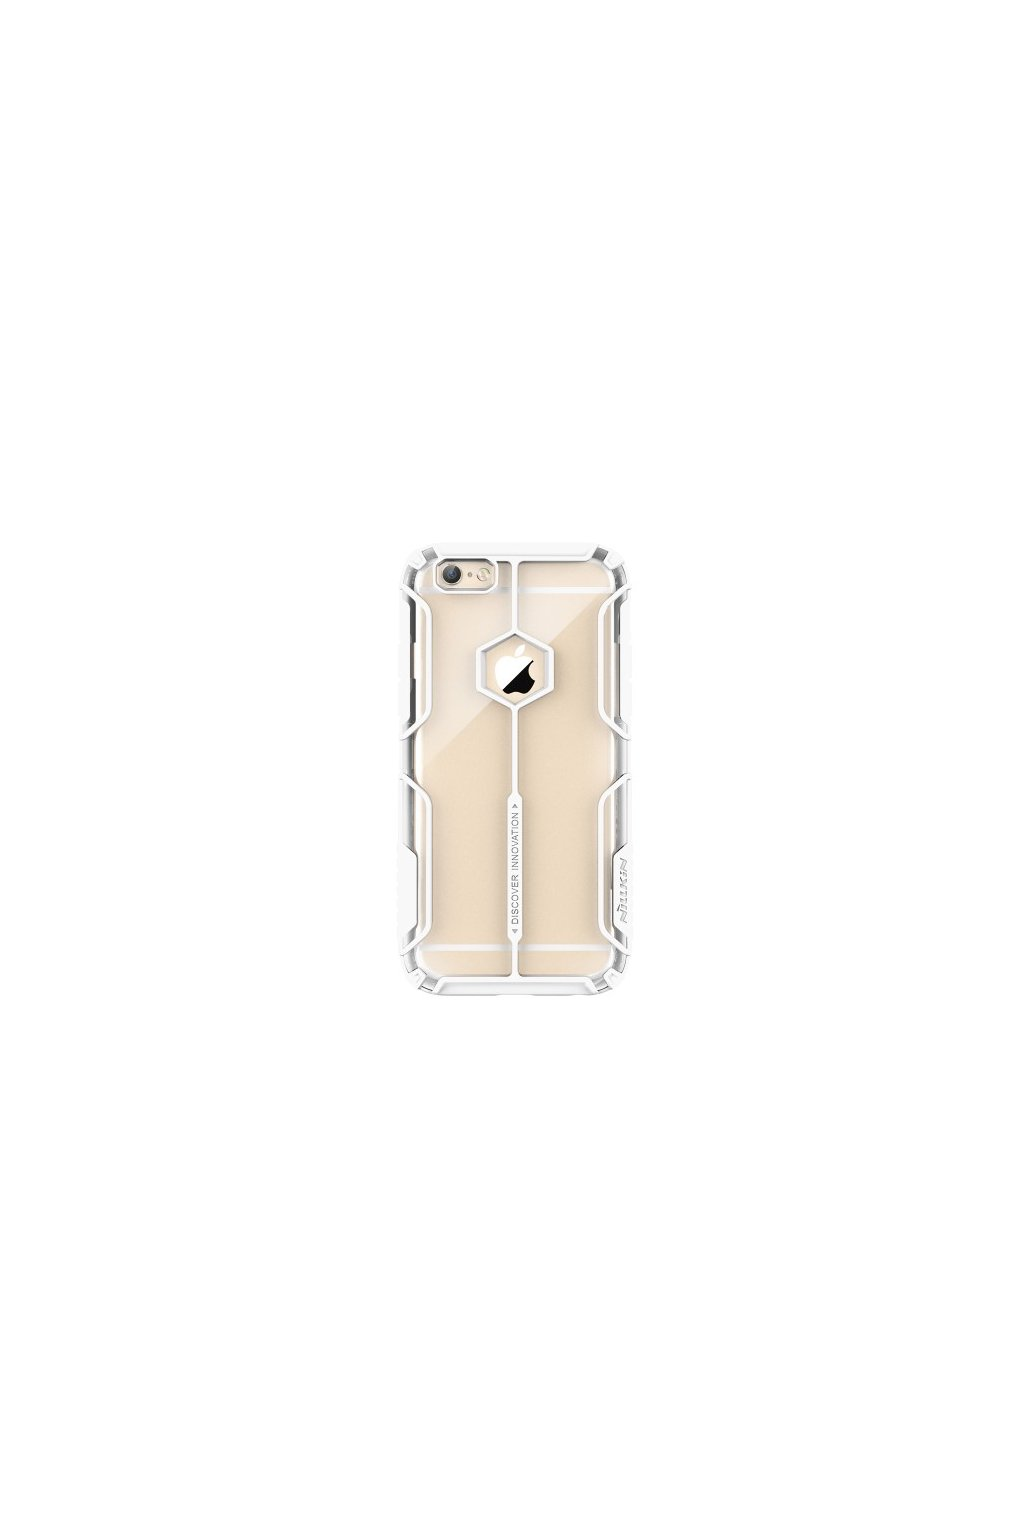 Pouzdro Nillkin Aegis Apple iPhone 6/6S, white